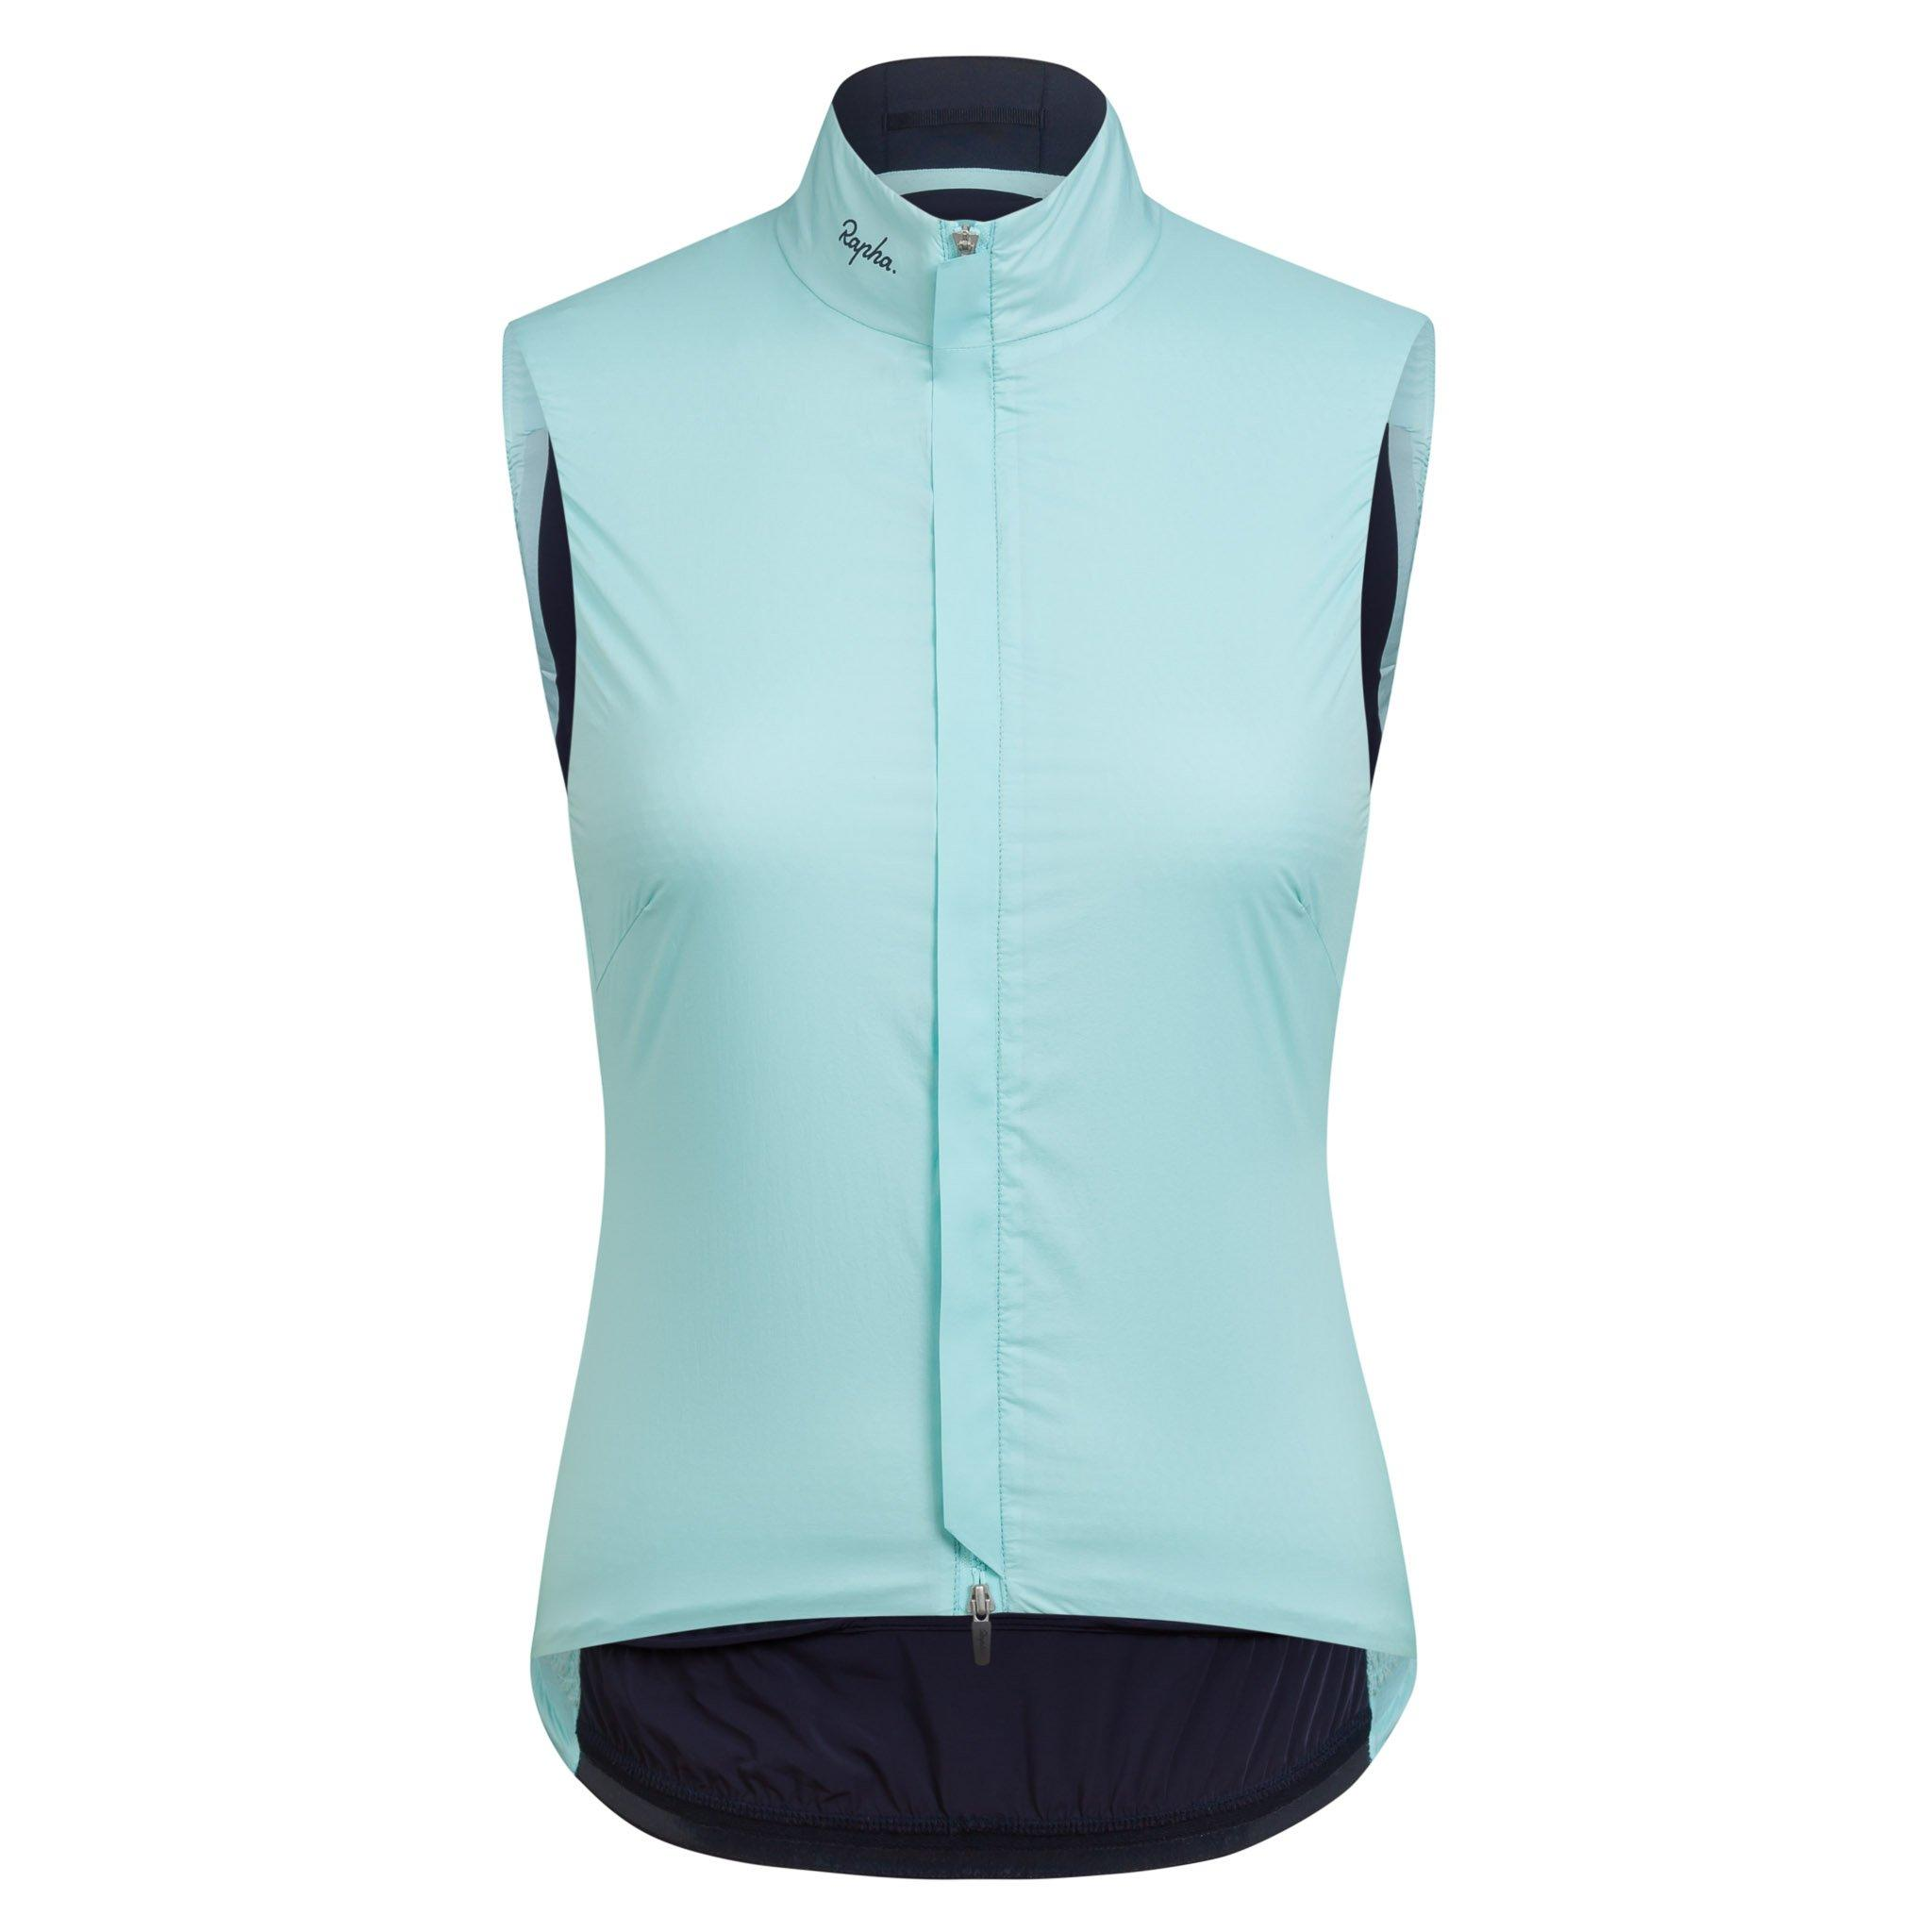 Souplesse Insulated Gilet